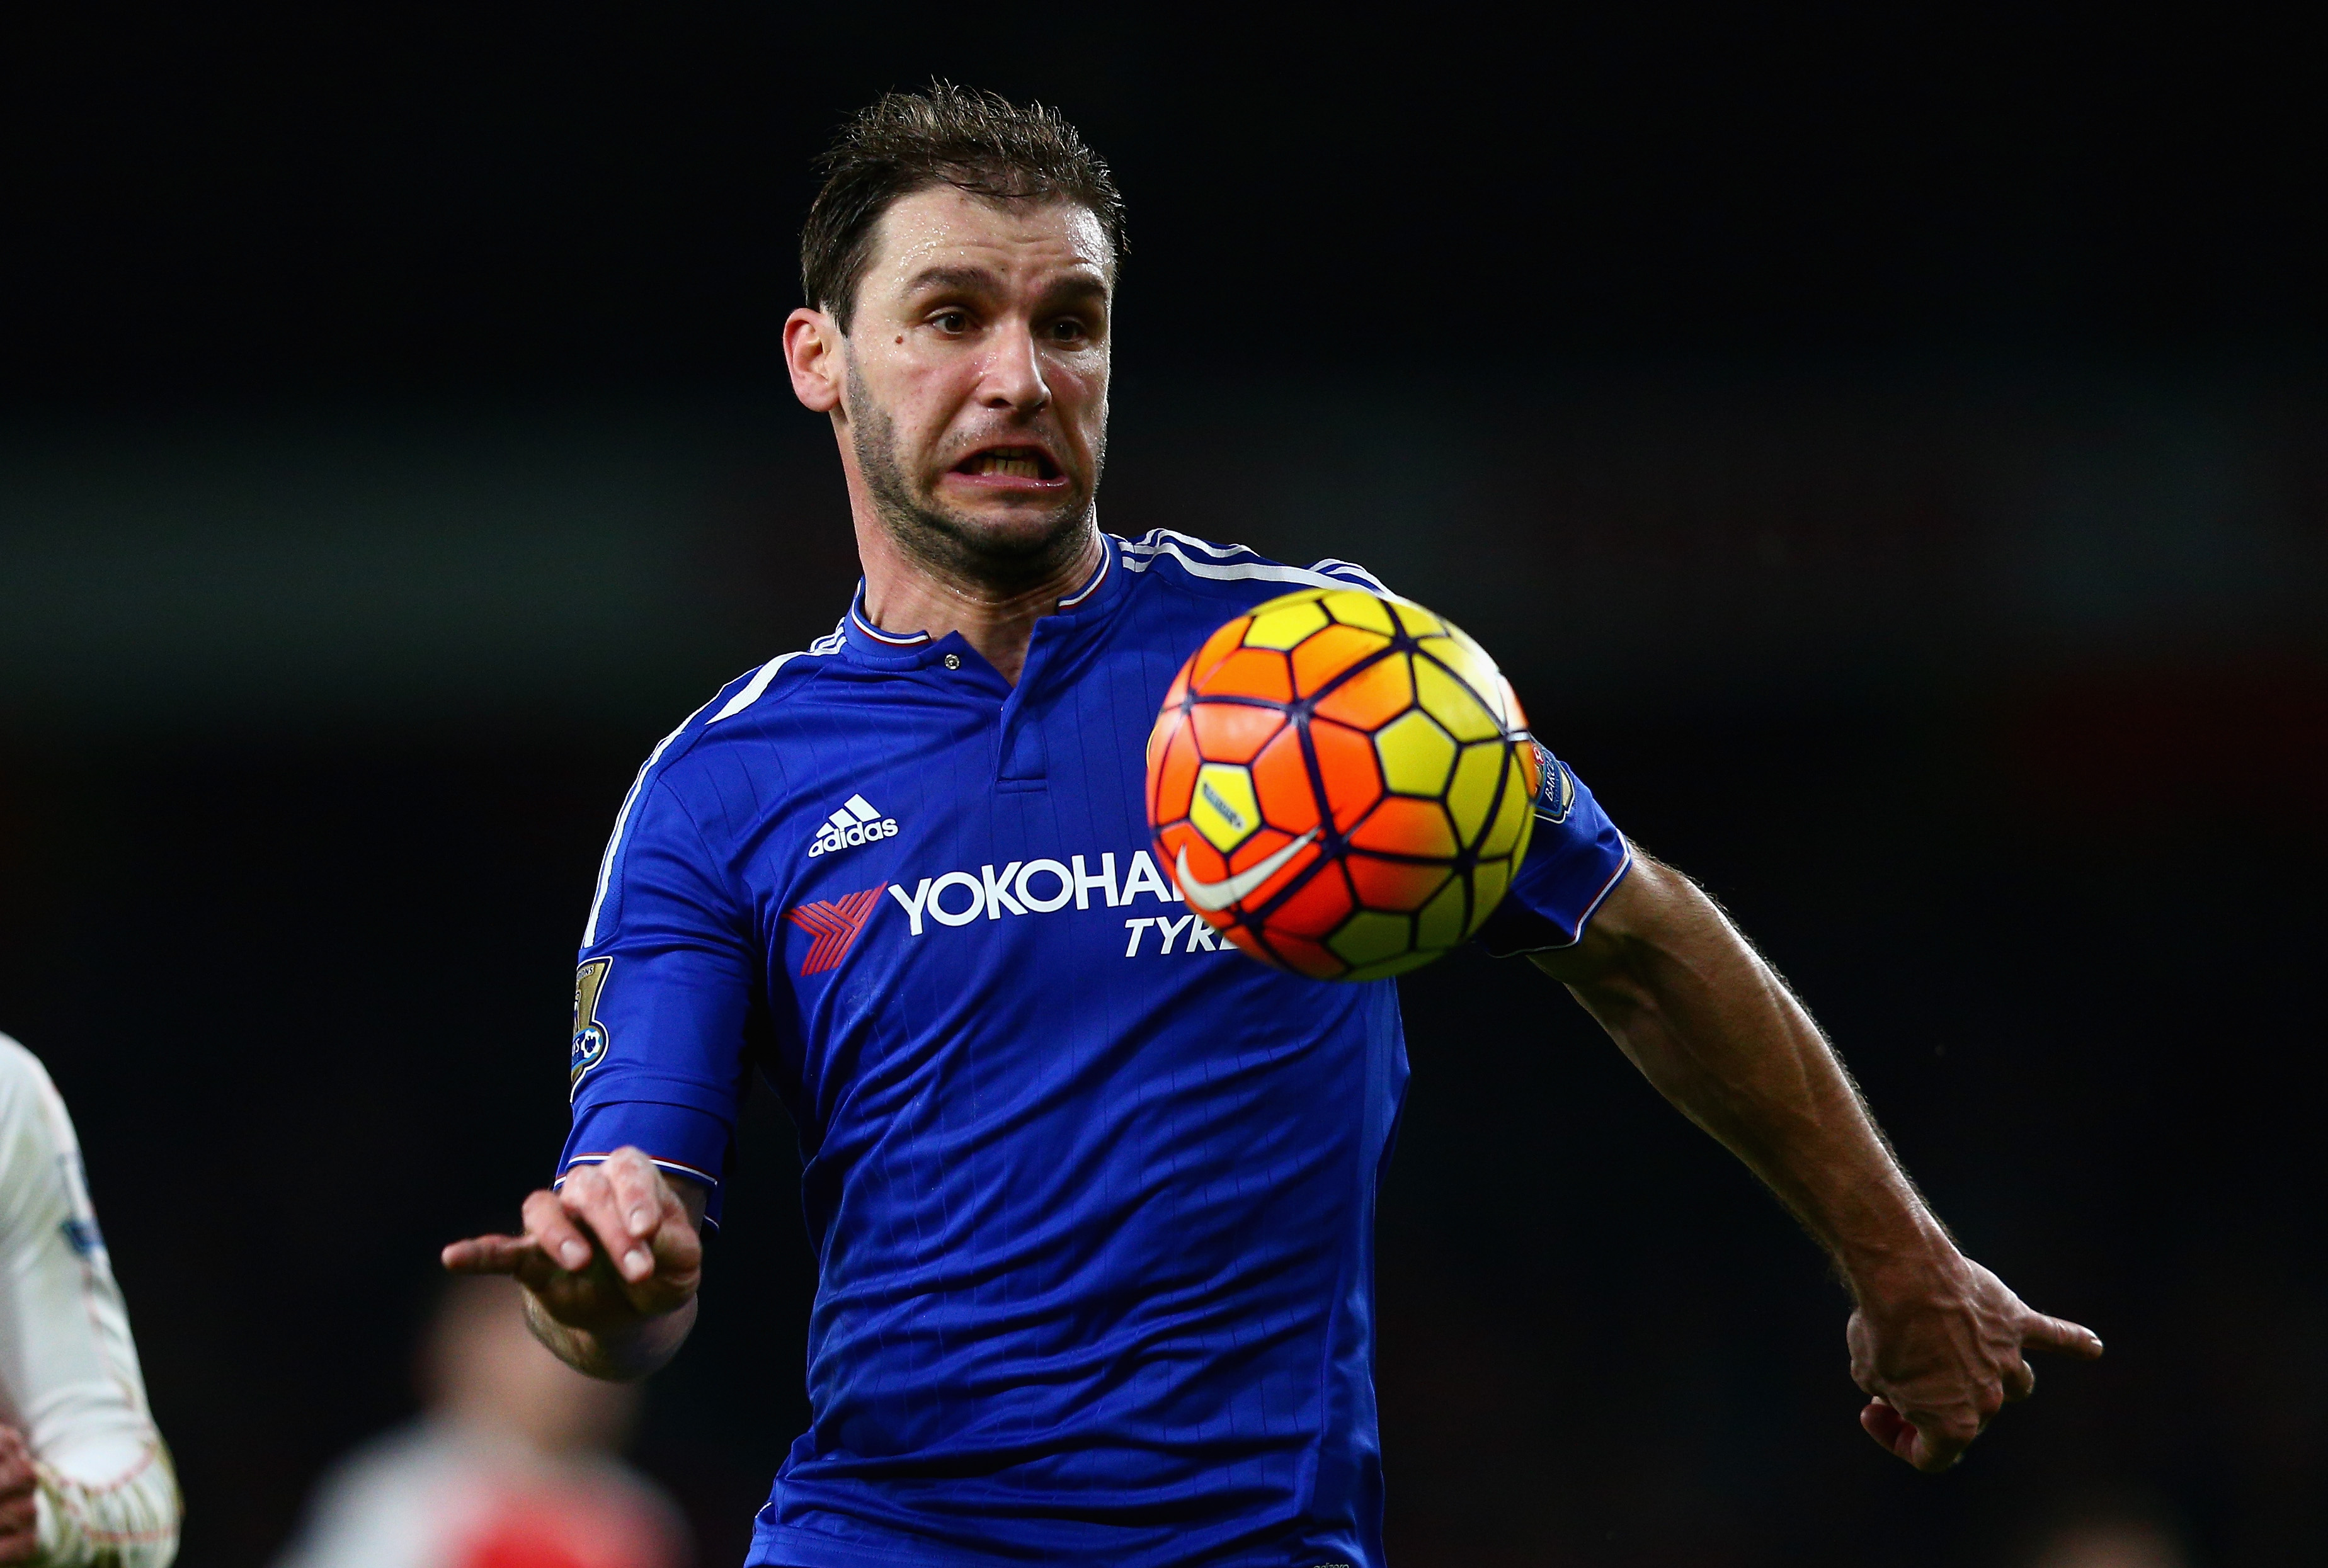 Chelsea , Chelsea MK Dons, Chelsea lineup, MK Dons lineup, Chelsea mk dons lineup, Chelsea stream, online, channel, when, time, watch, free, live, Chelsea free stream, Chelsea live online